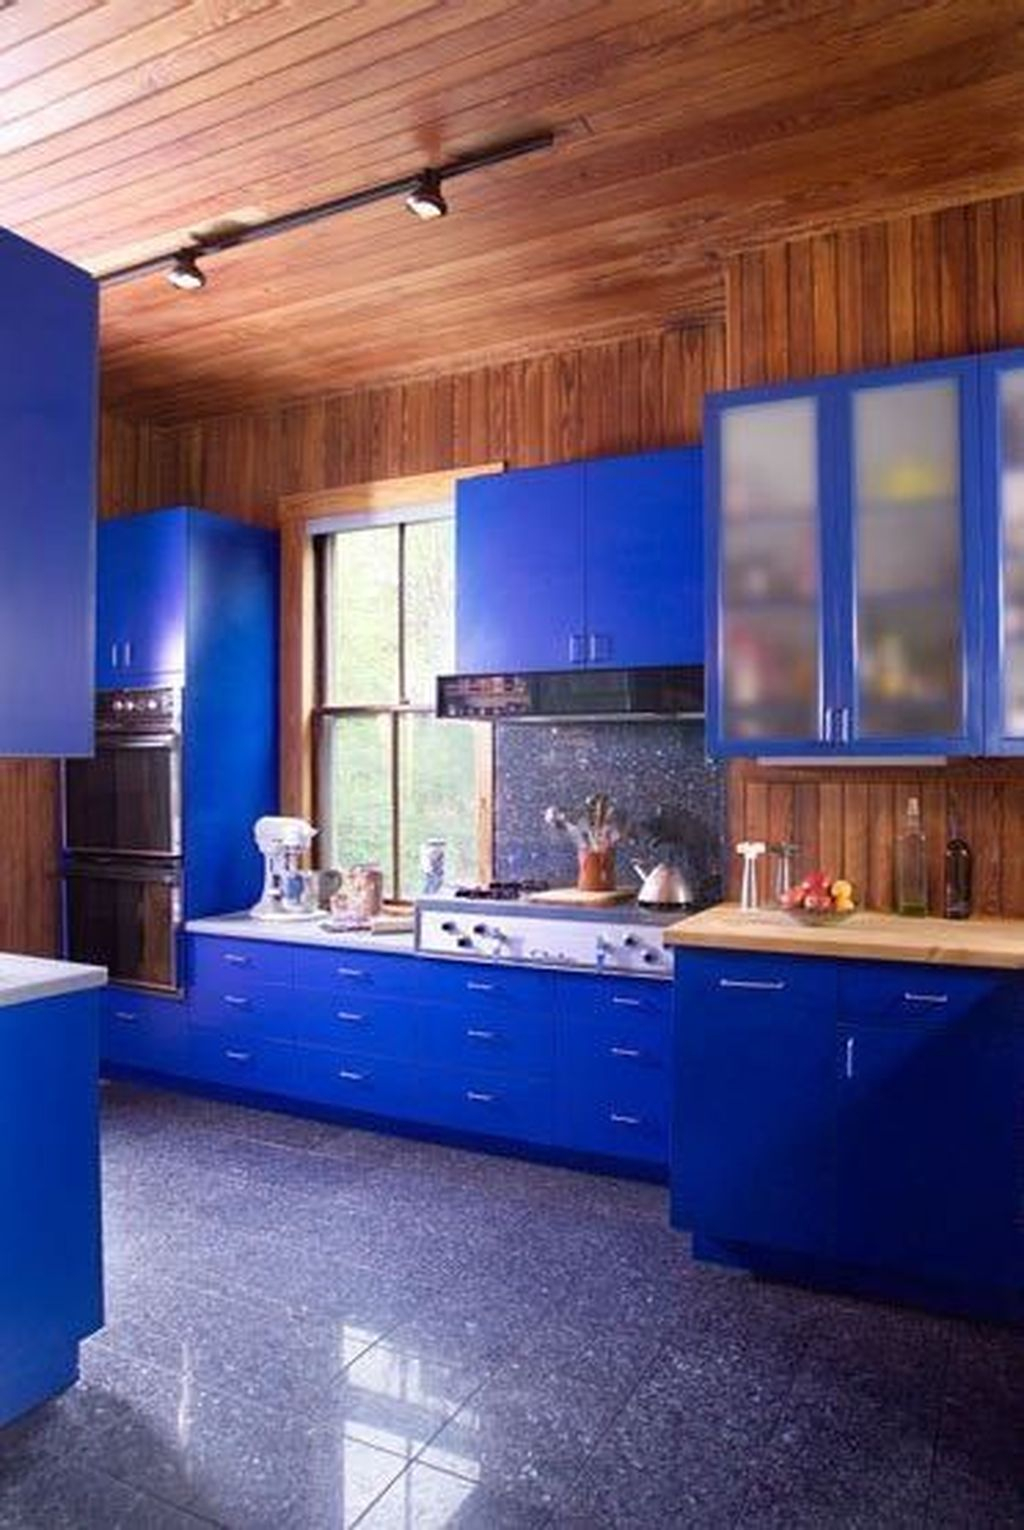 Adorable Rainbow Colorful Kitchens Design Ideas To Looks More Awesome 23